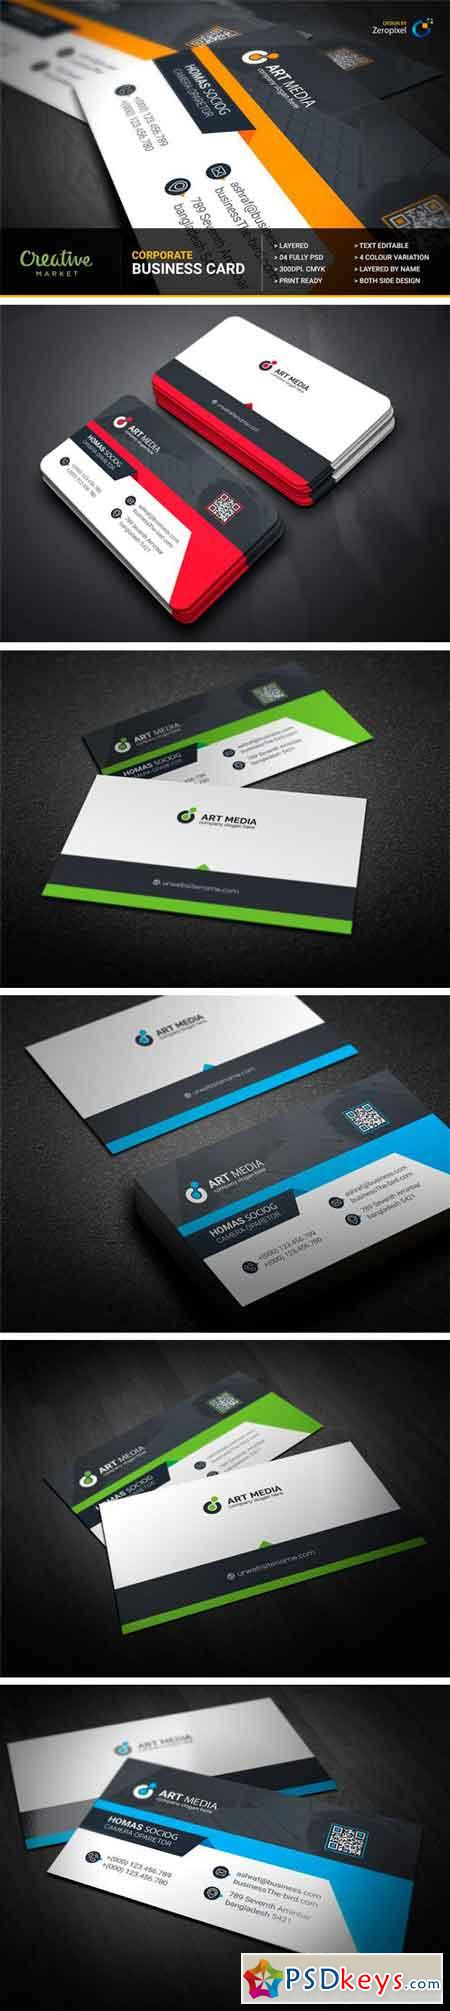 Business Card 1188915